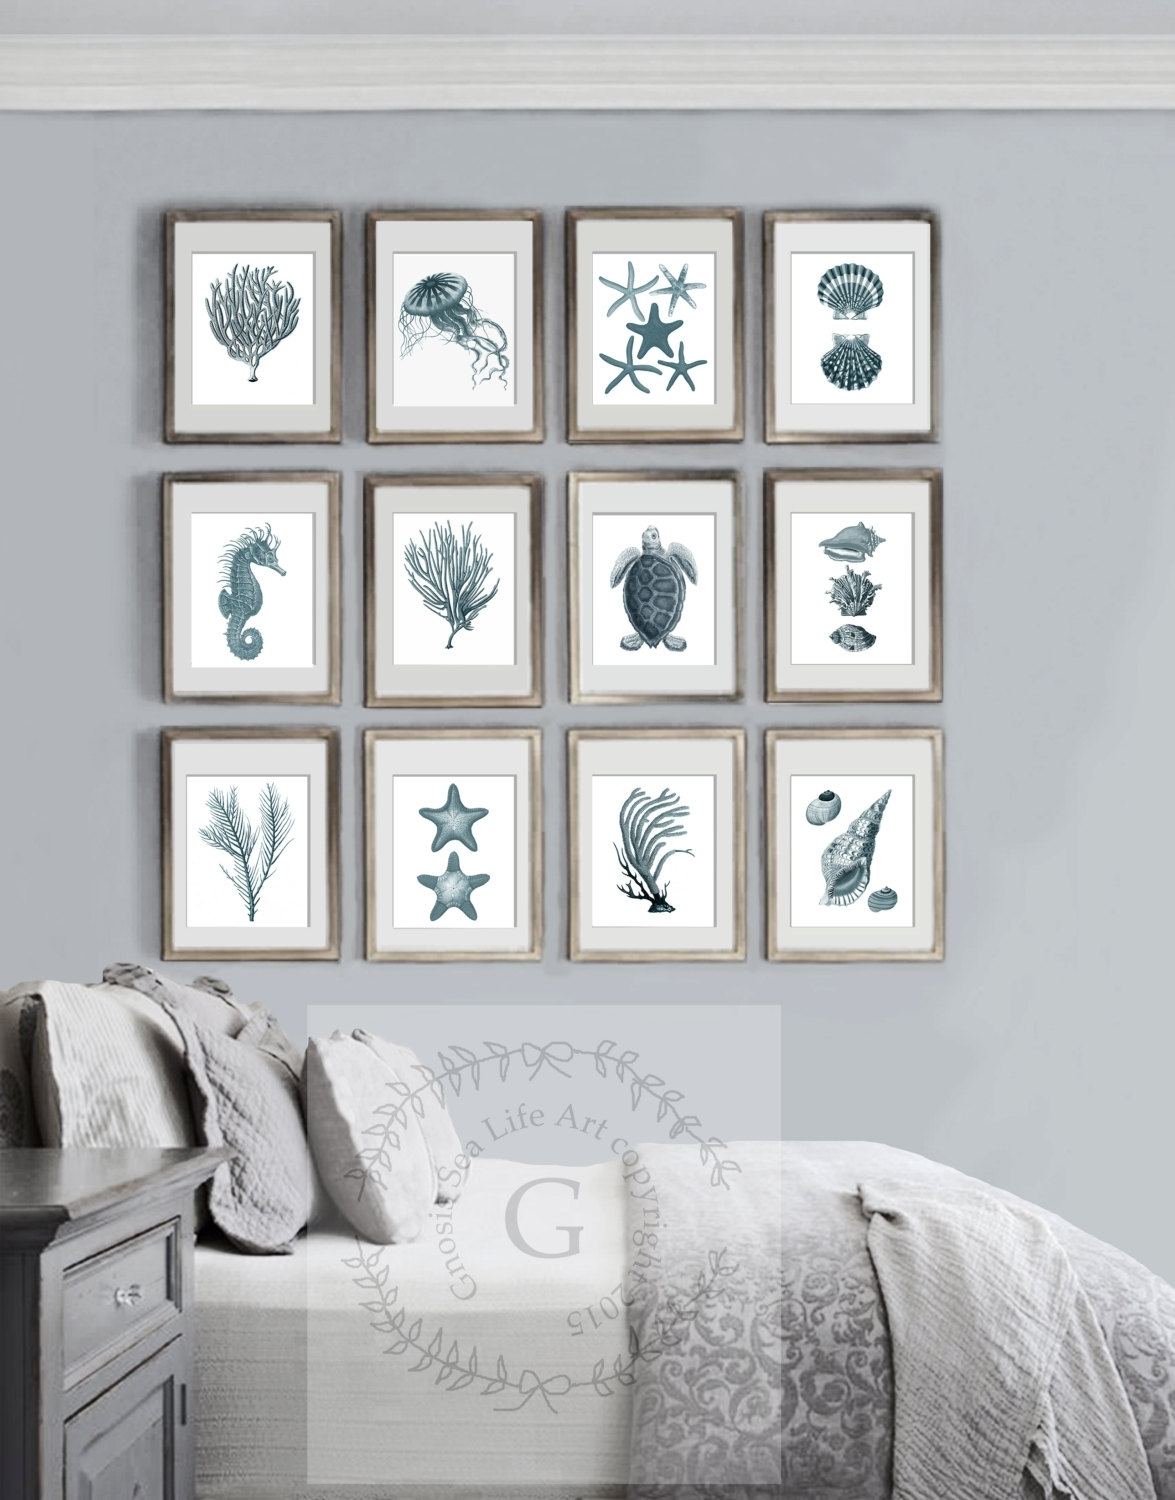 Stunning Design Ideas Coastal Wall Art 20 Of Canvas Crate Barrel Pertaining To Most Recent Crate And Barrel Wall Art (Gallery 11 of 20)